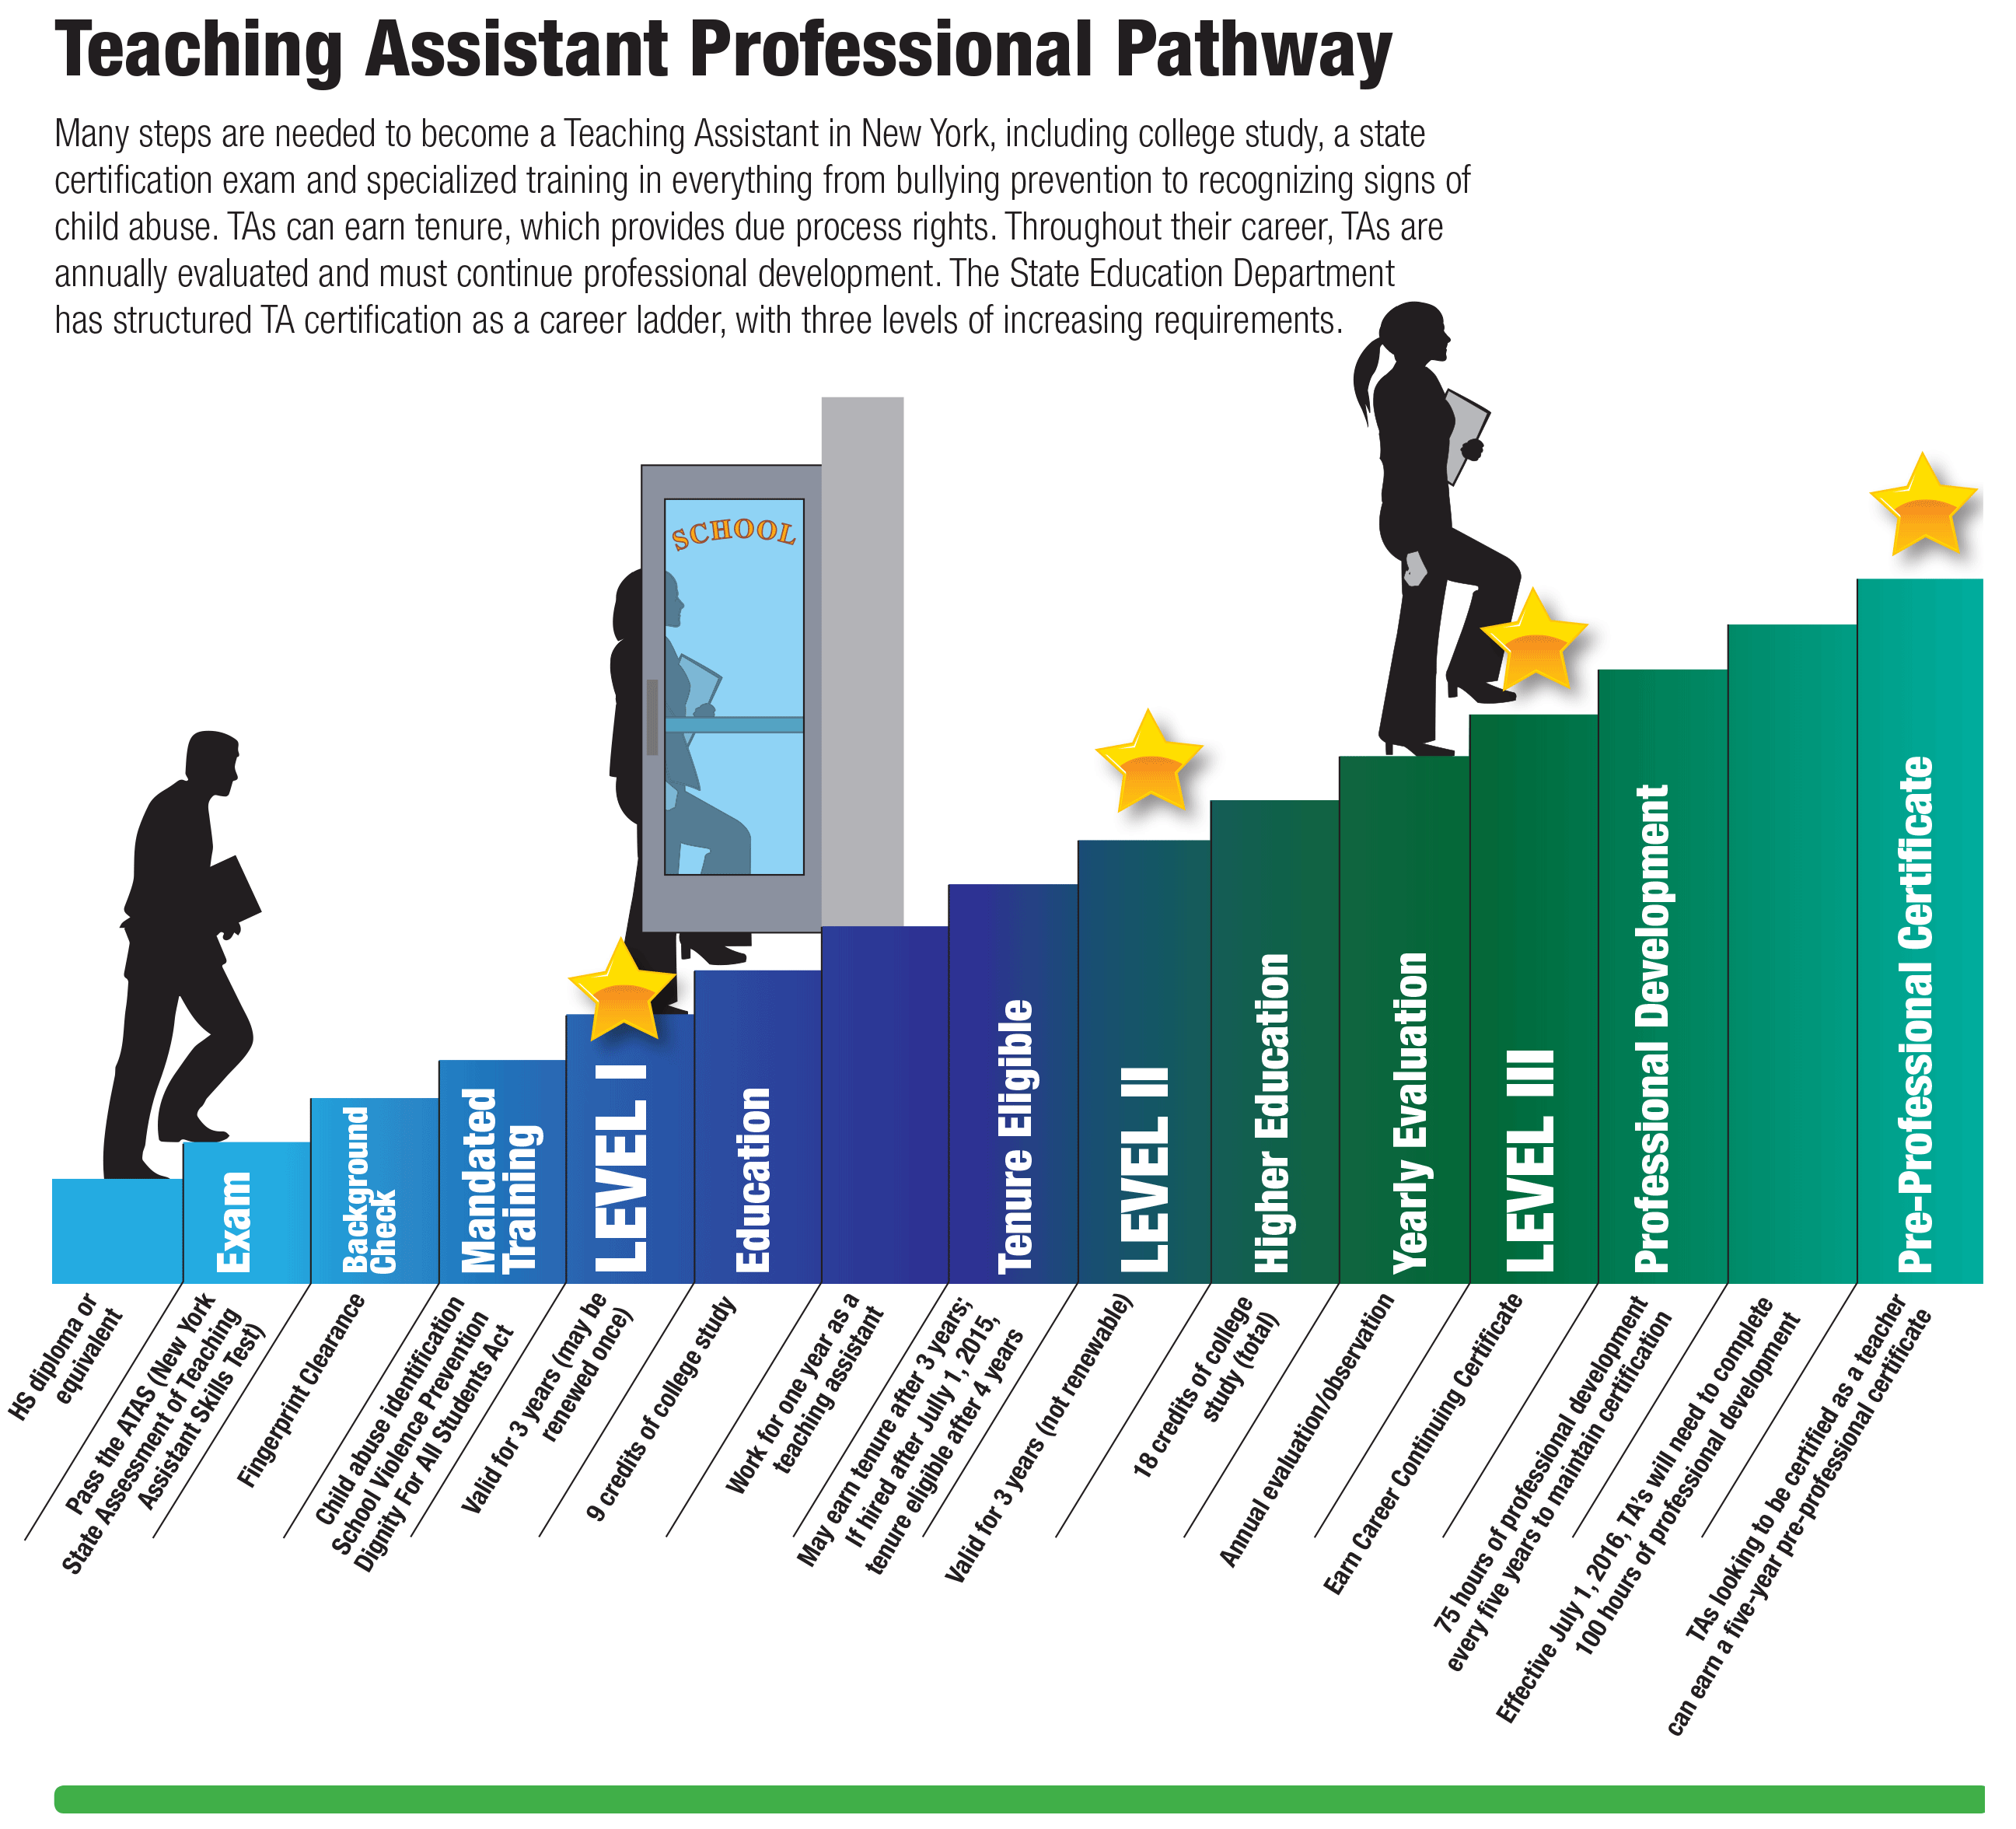 What Is A Teaching Assistants Professional Pathway